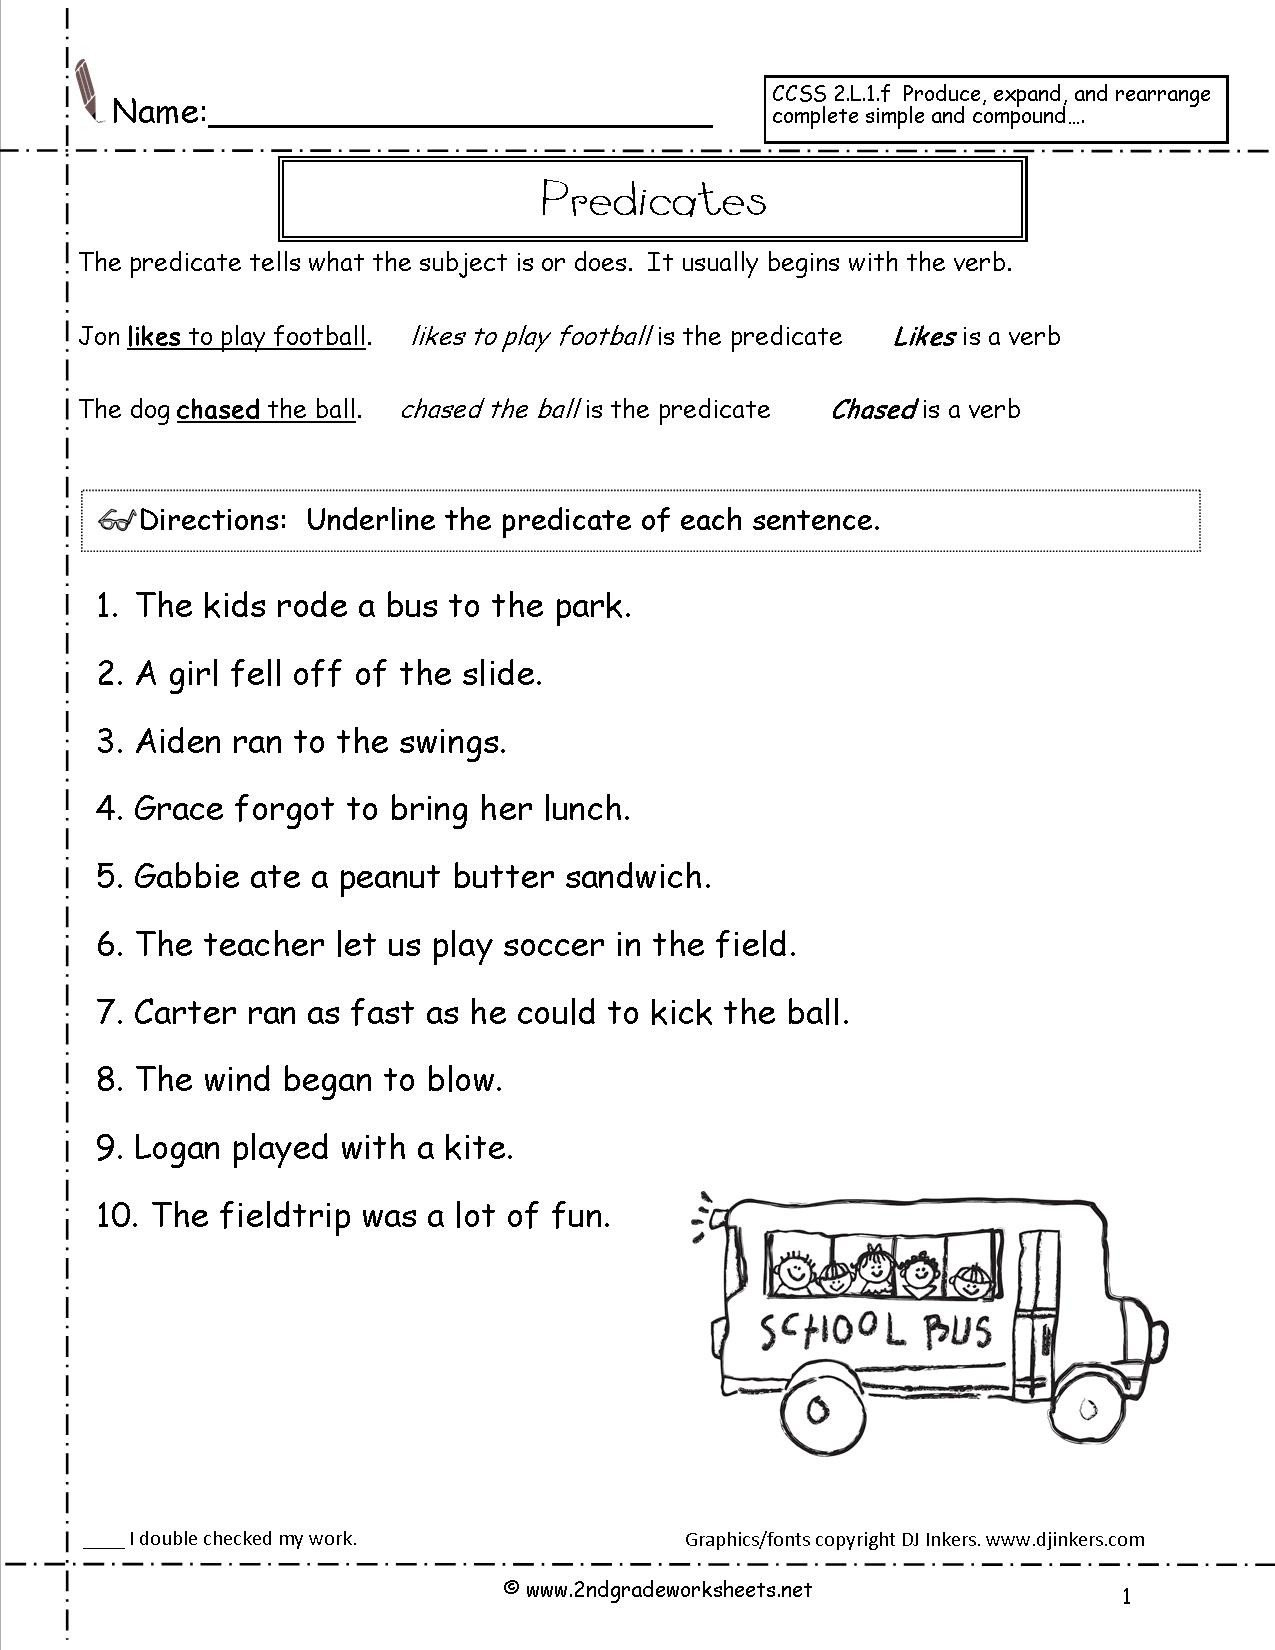 Complete Sentences Worksheets 2nd Grade Editing Worksheet Sentece